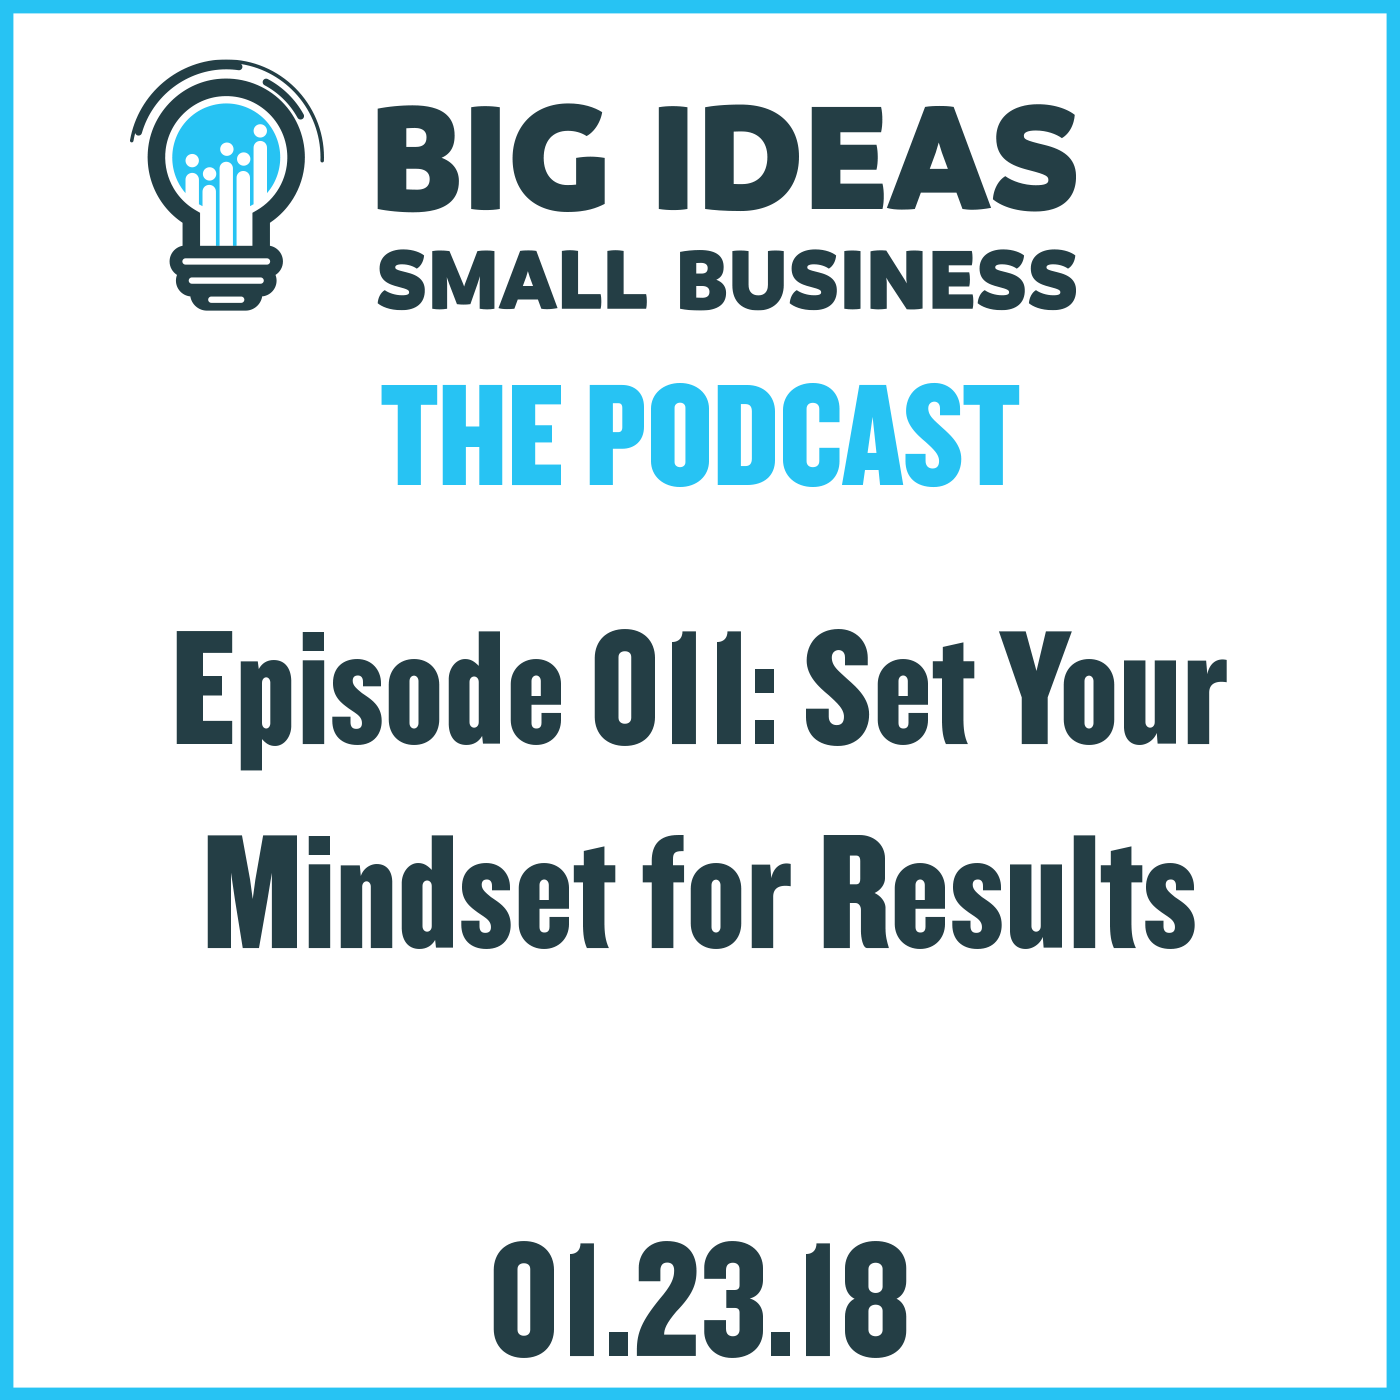 Set Your Mindset for Results – Big Ideas Small Business Podcast